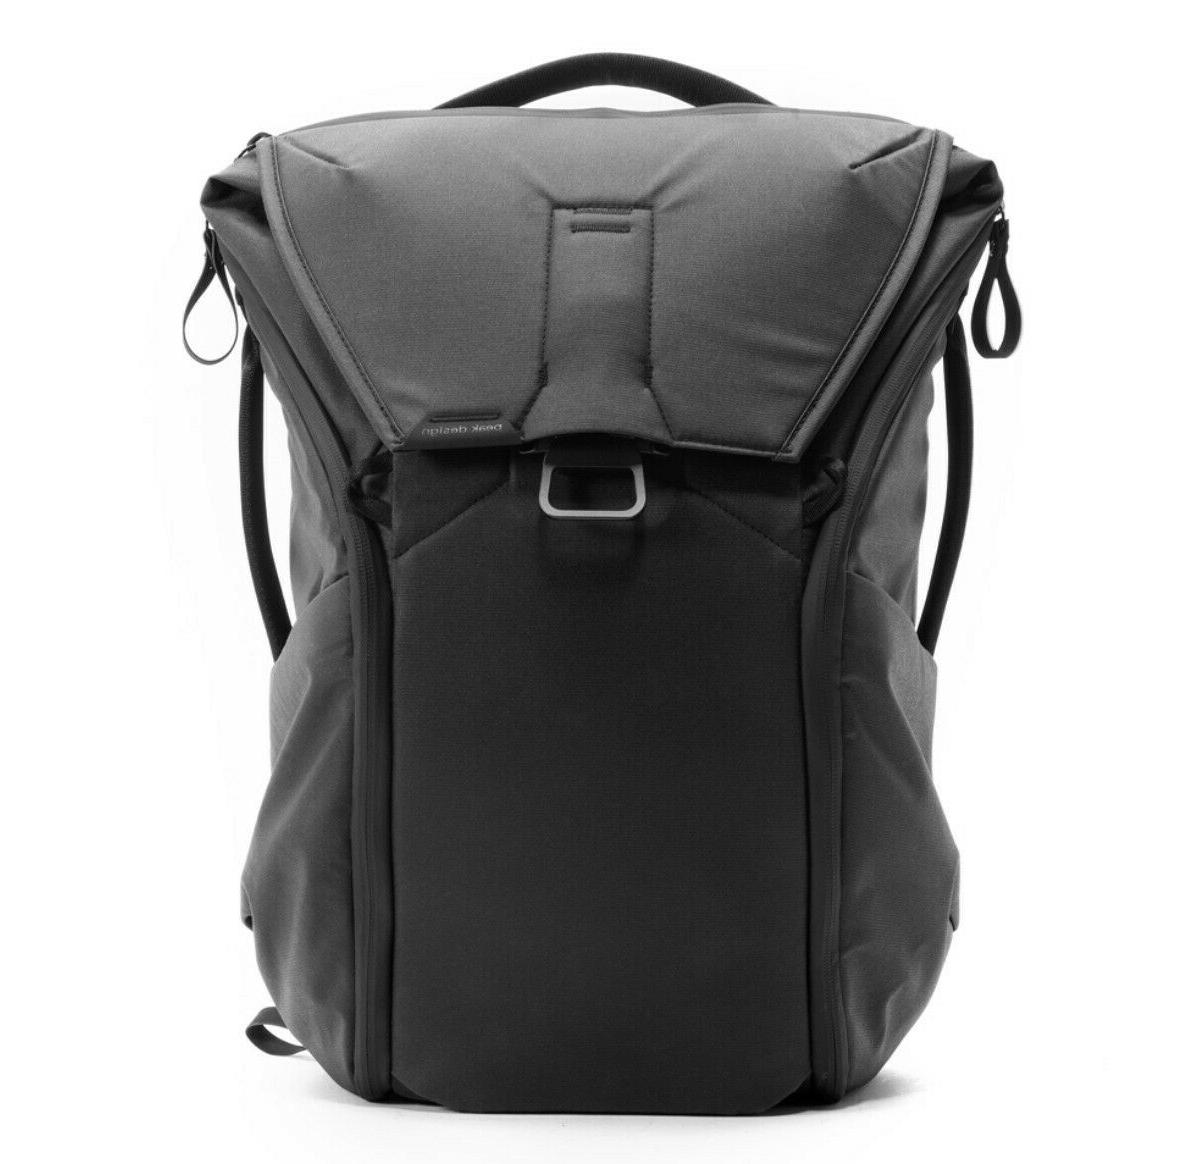 everyday backpack 20l black new with tags